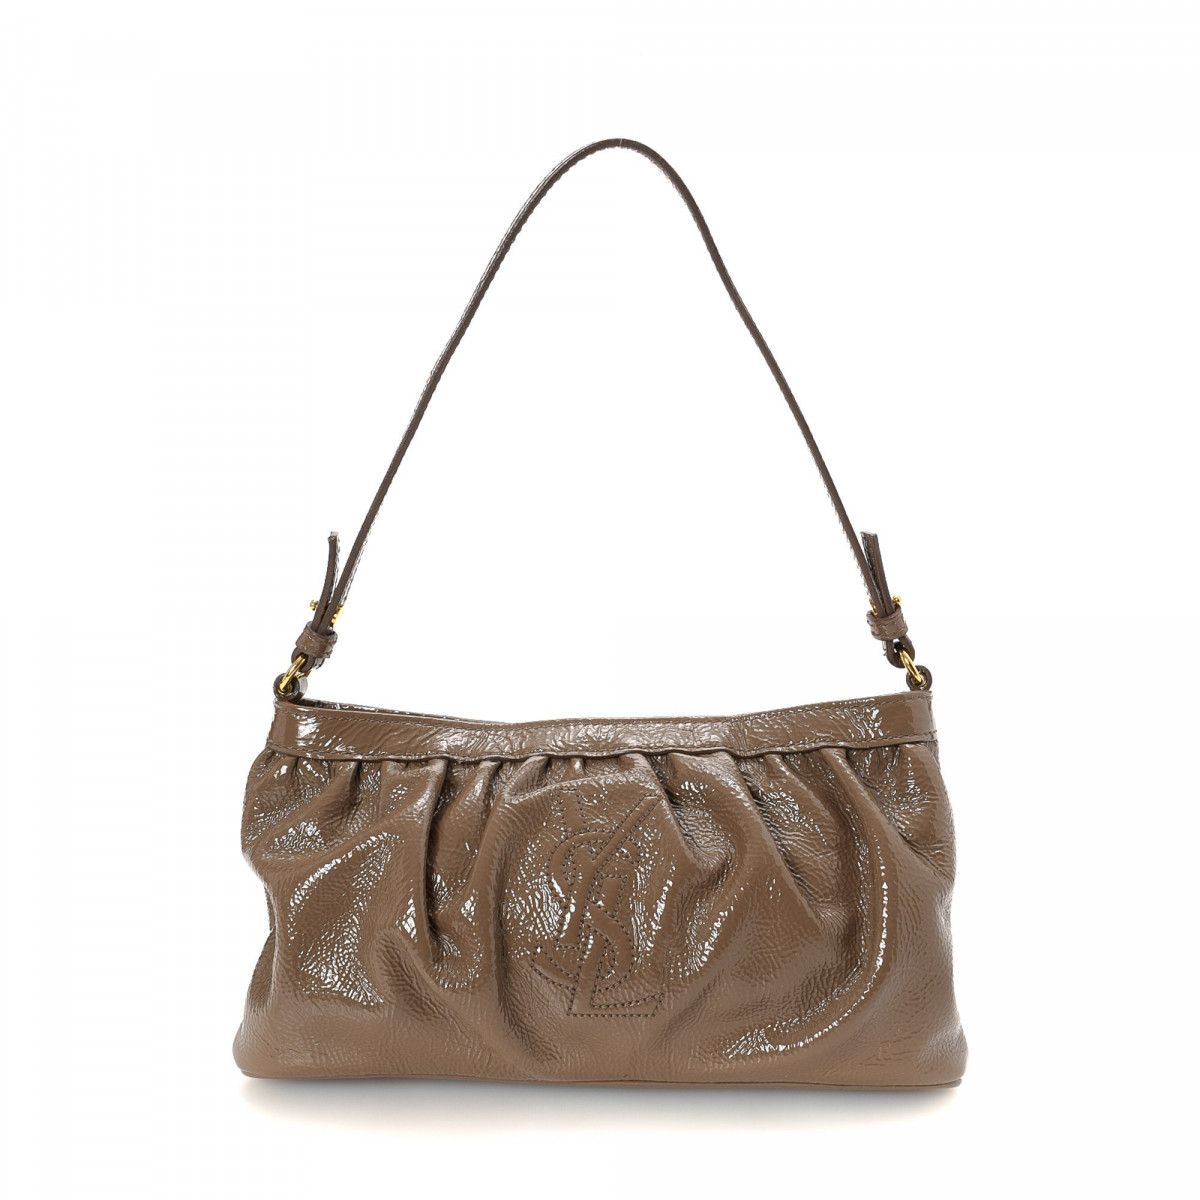 Yves Saint Laurent Patent Leather Handbag Patent leather ...